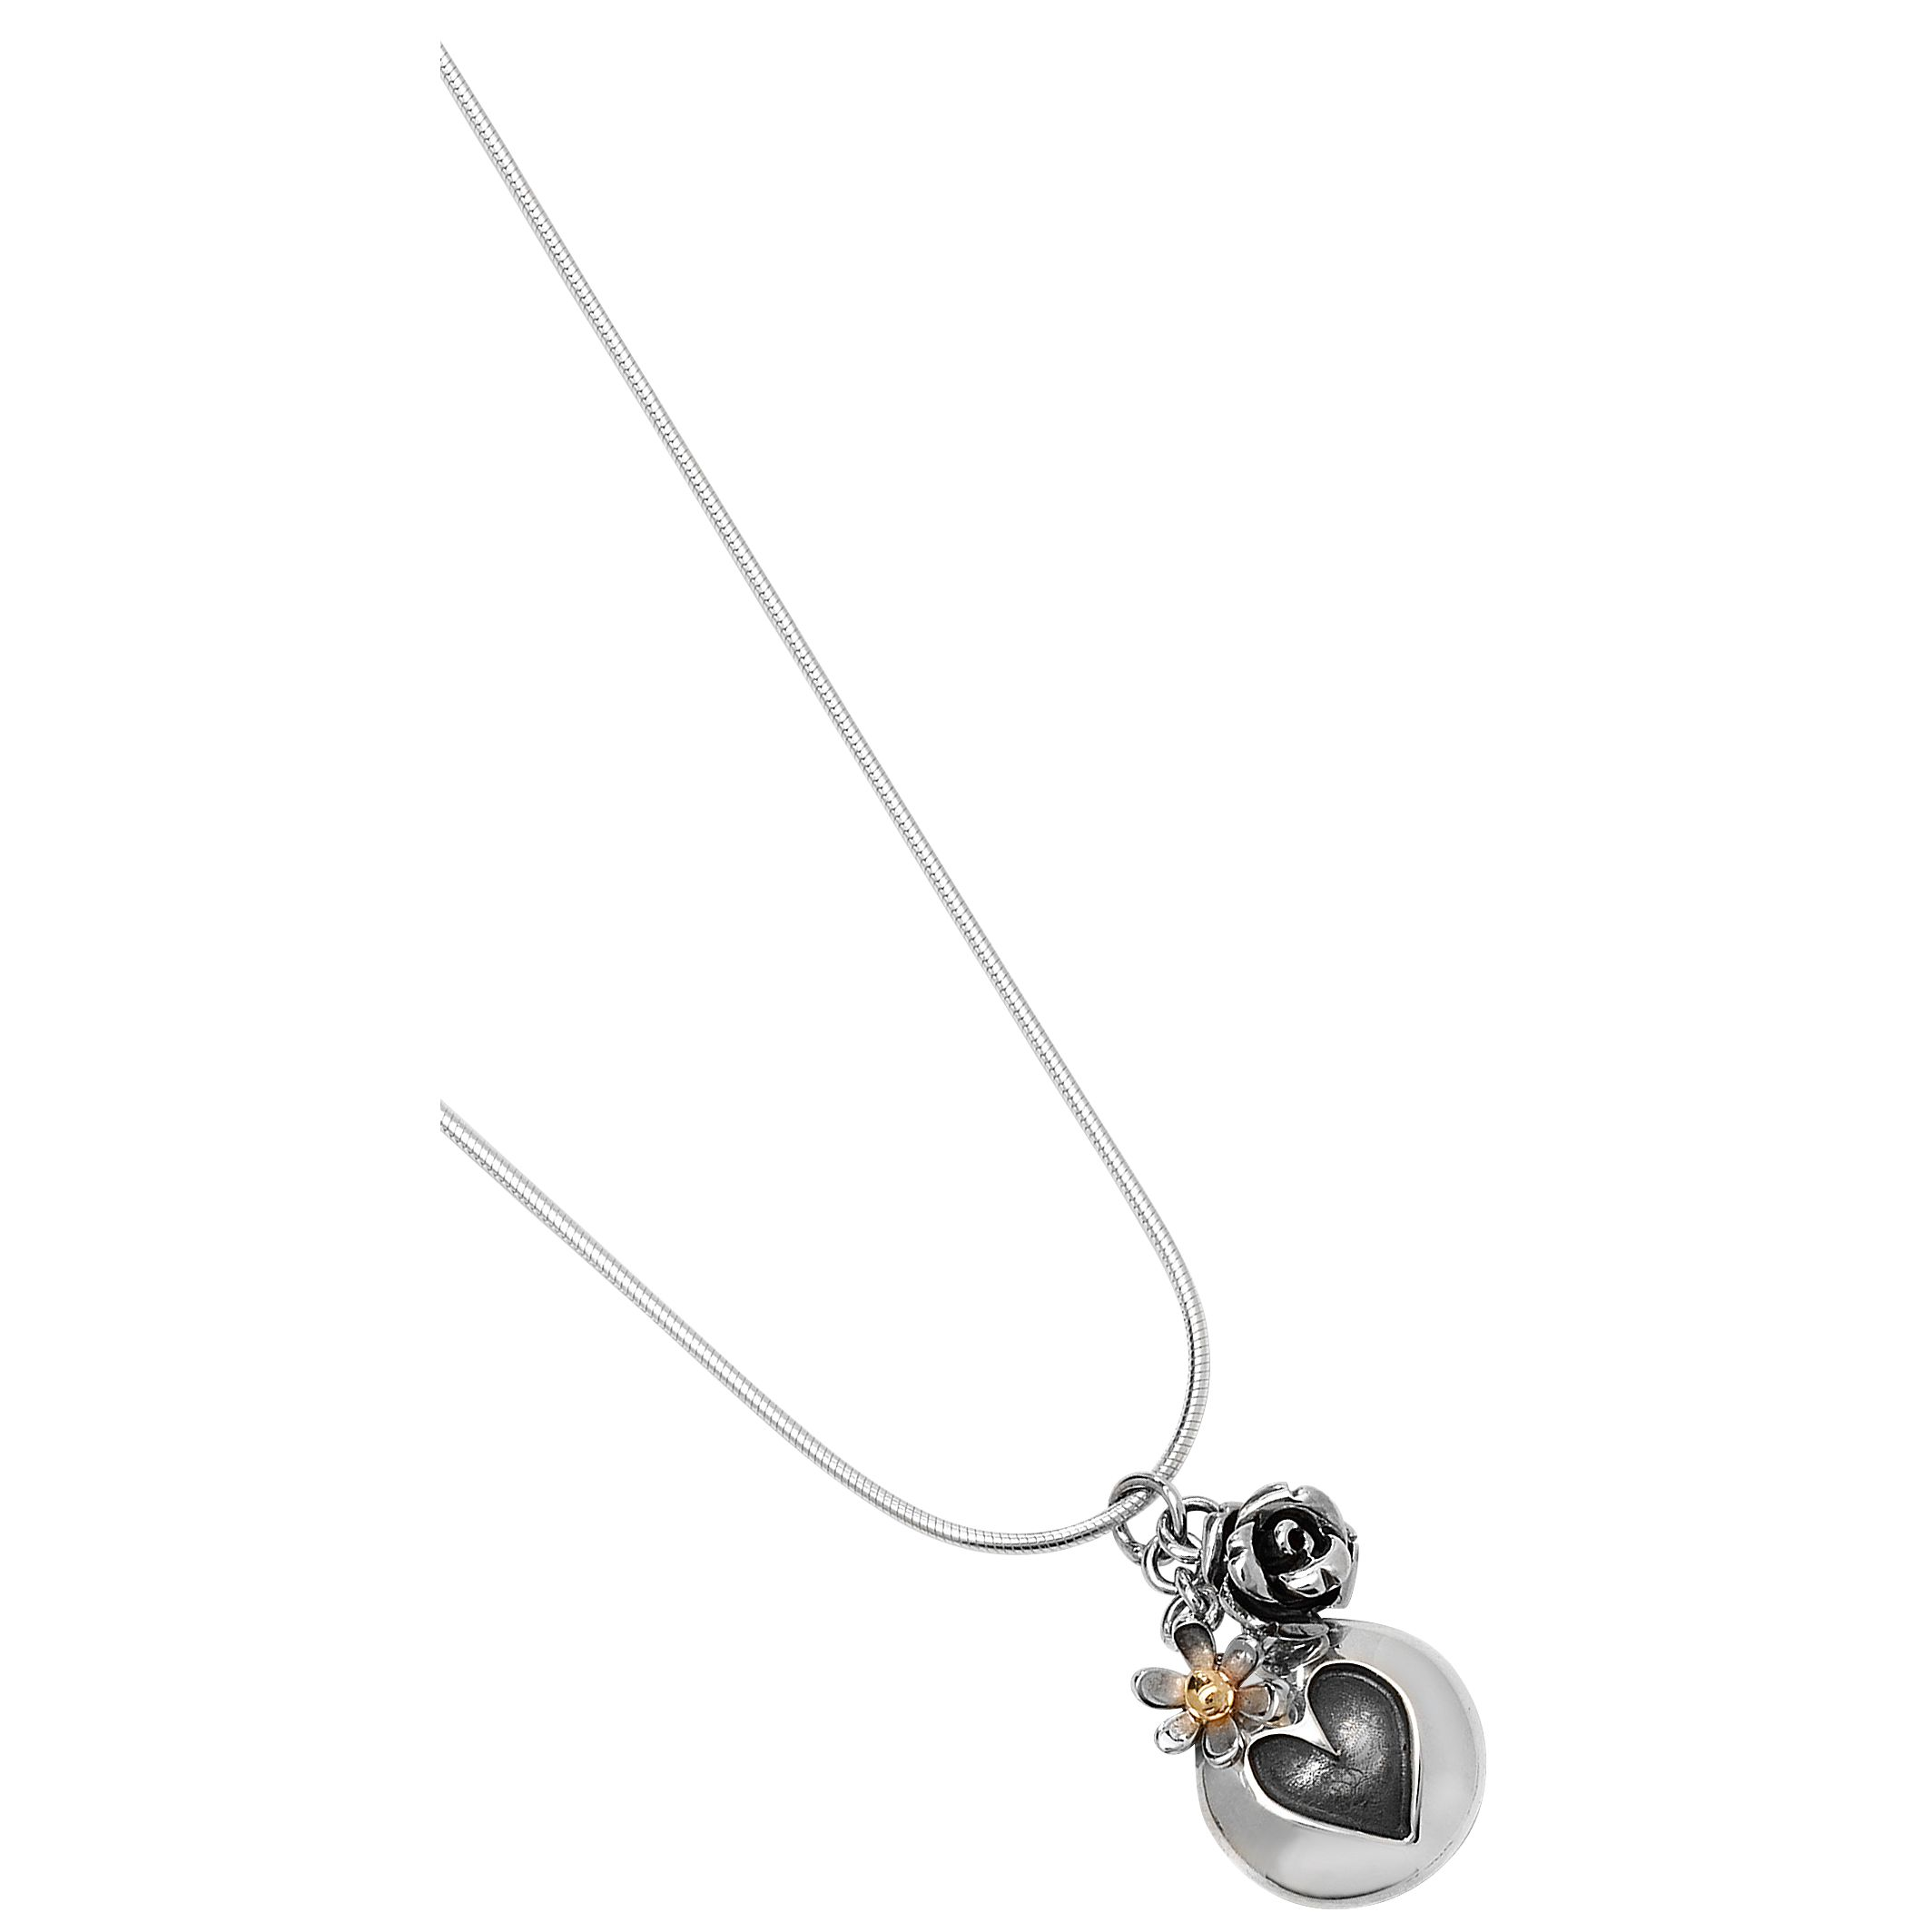 Linda Macdonald Silver Heart and Rose Pendant Necklace